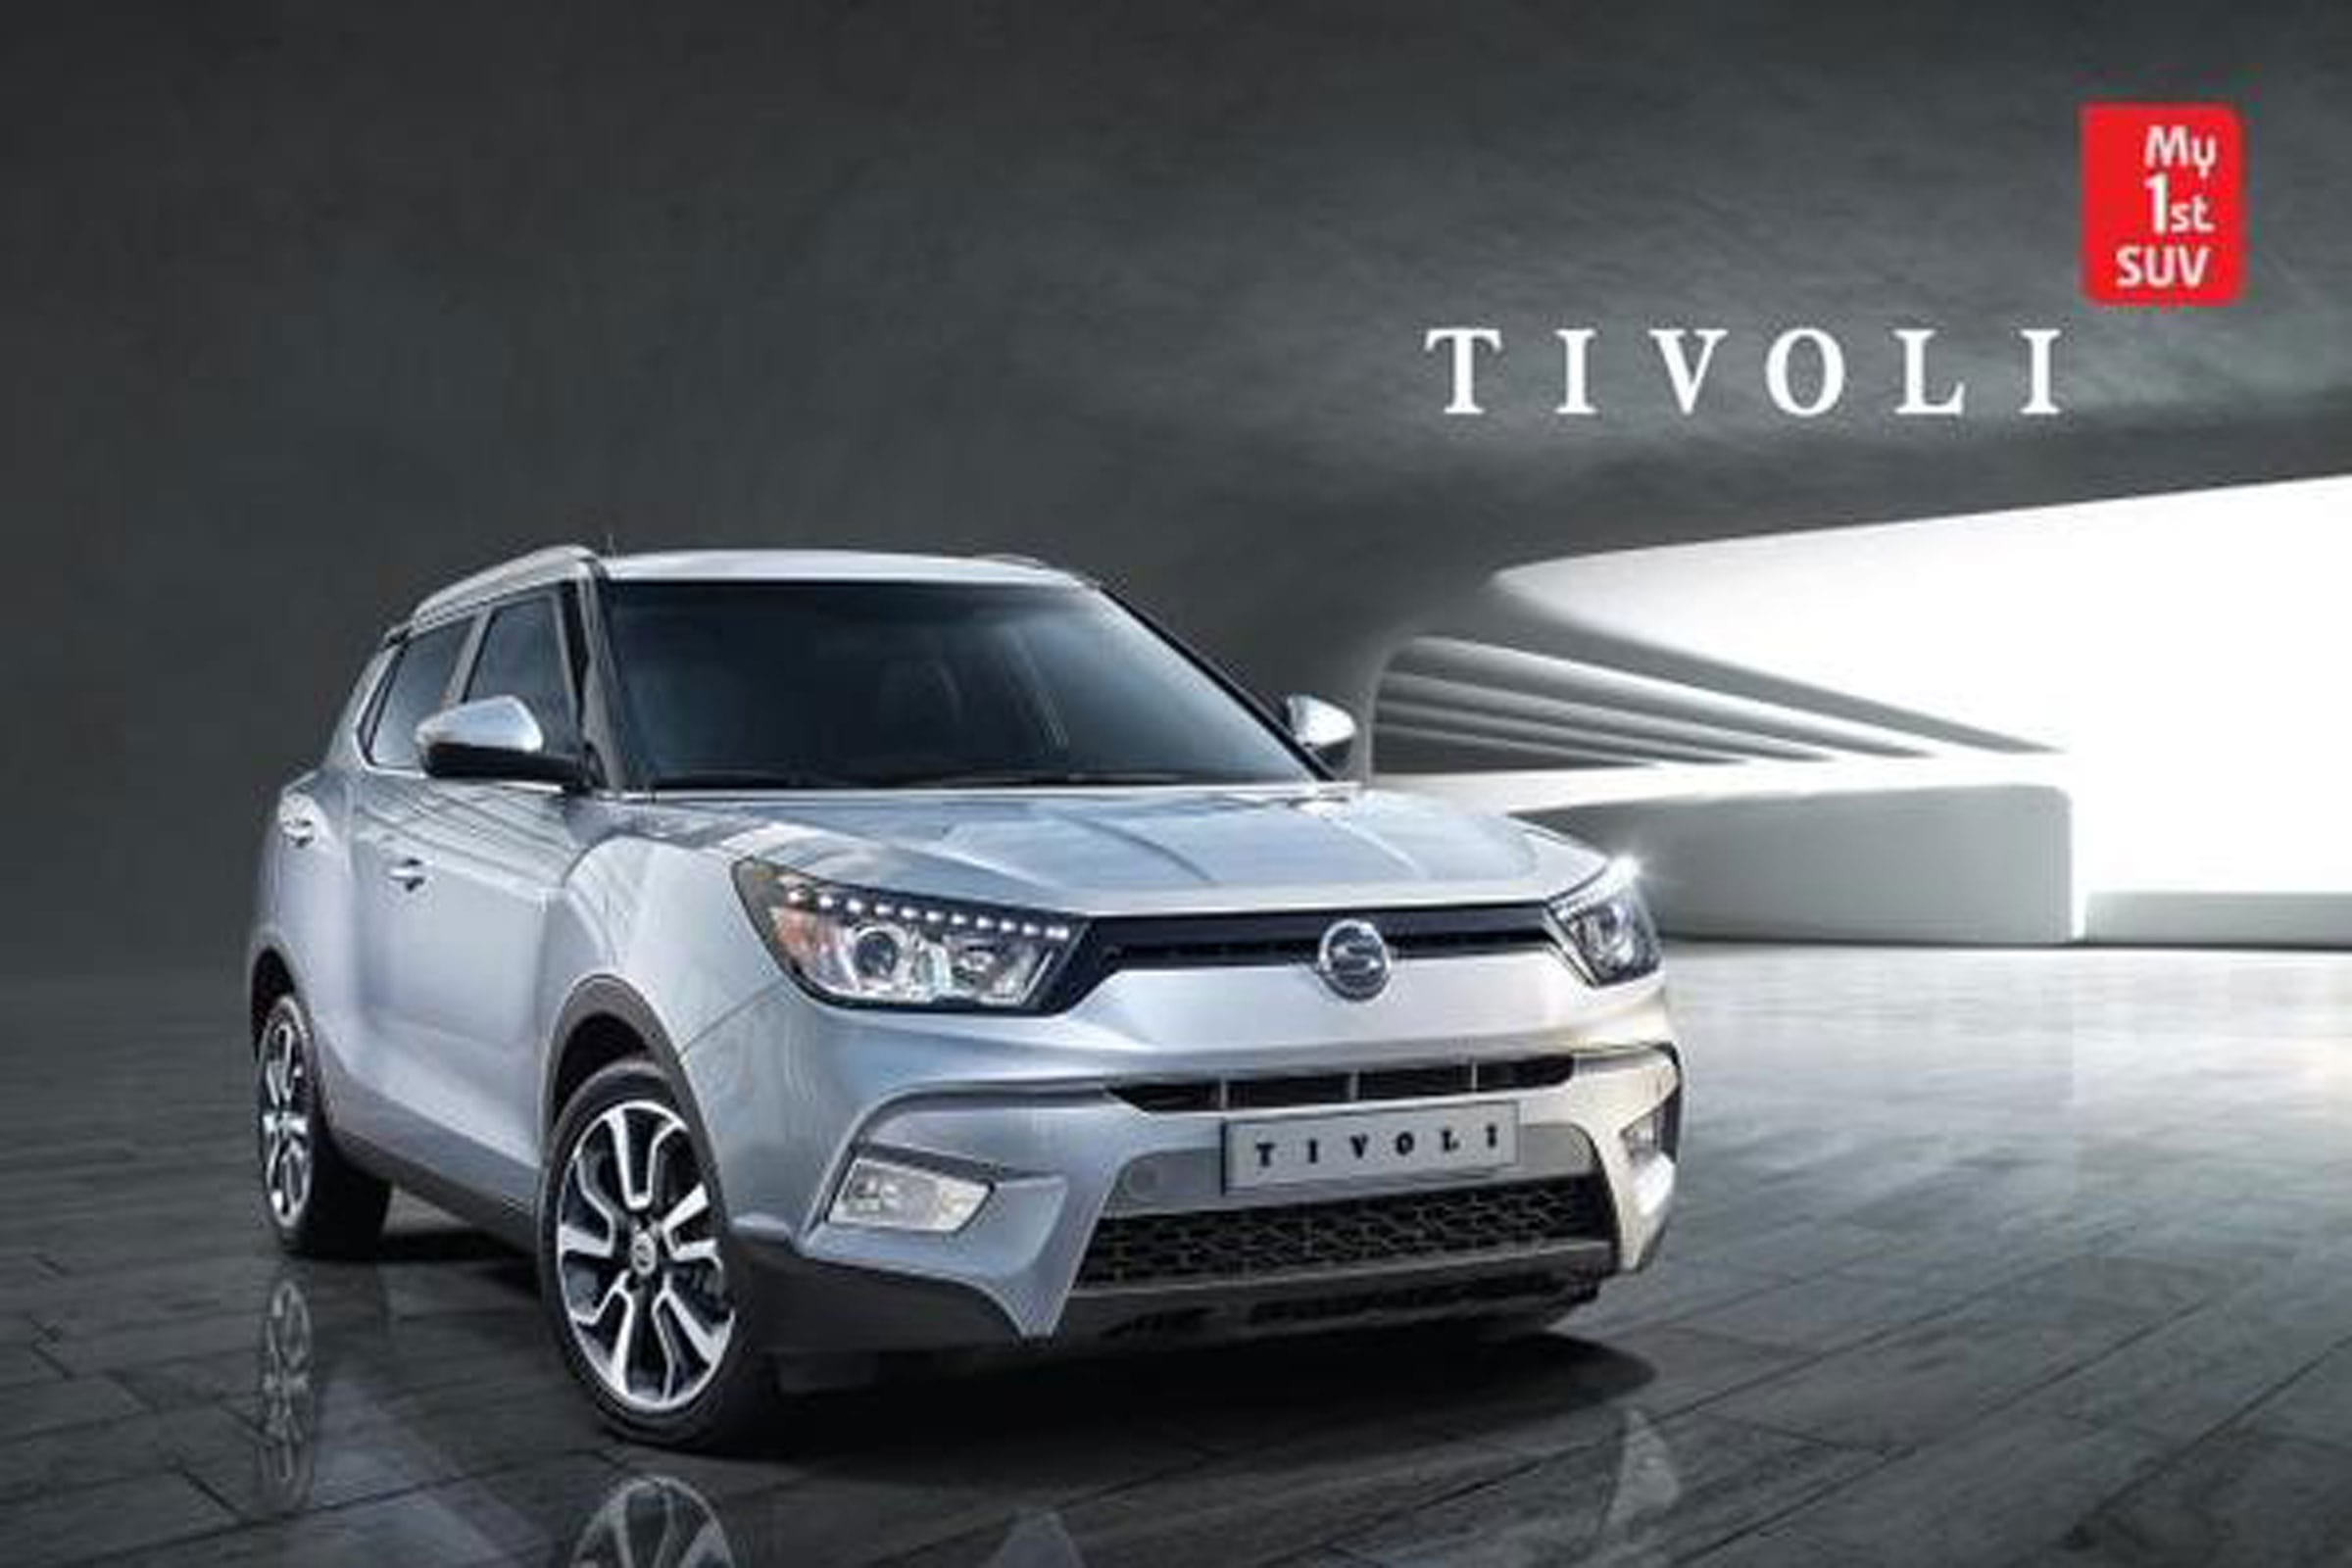 SsangYong Tivoli Desktop wallpapers